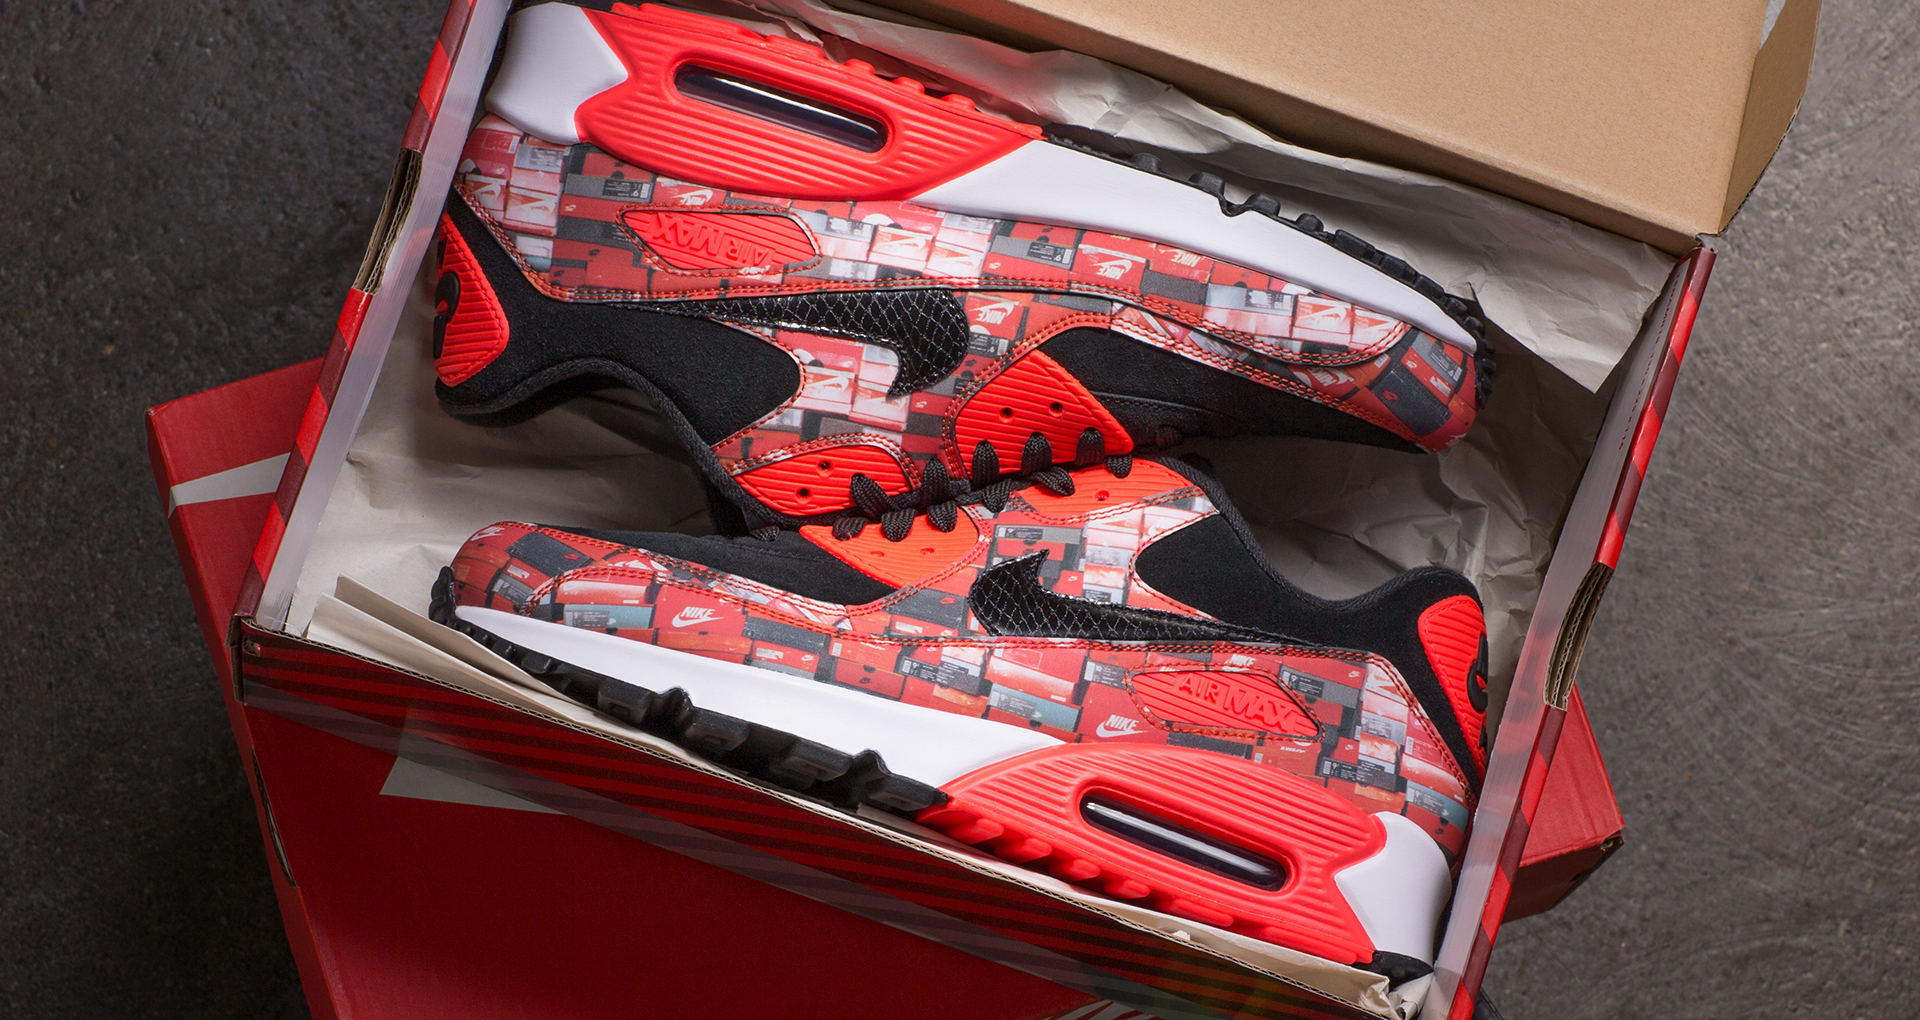 atmos-nike-air-max-90-we-love-nike-release-20180526